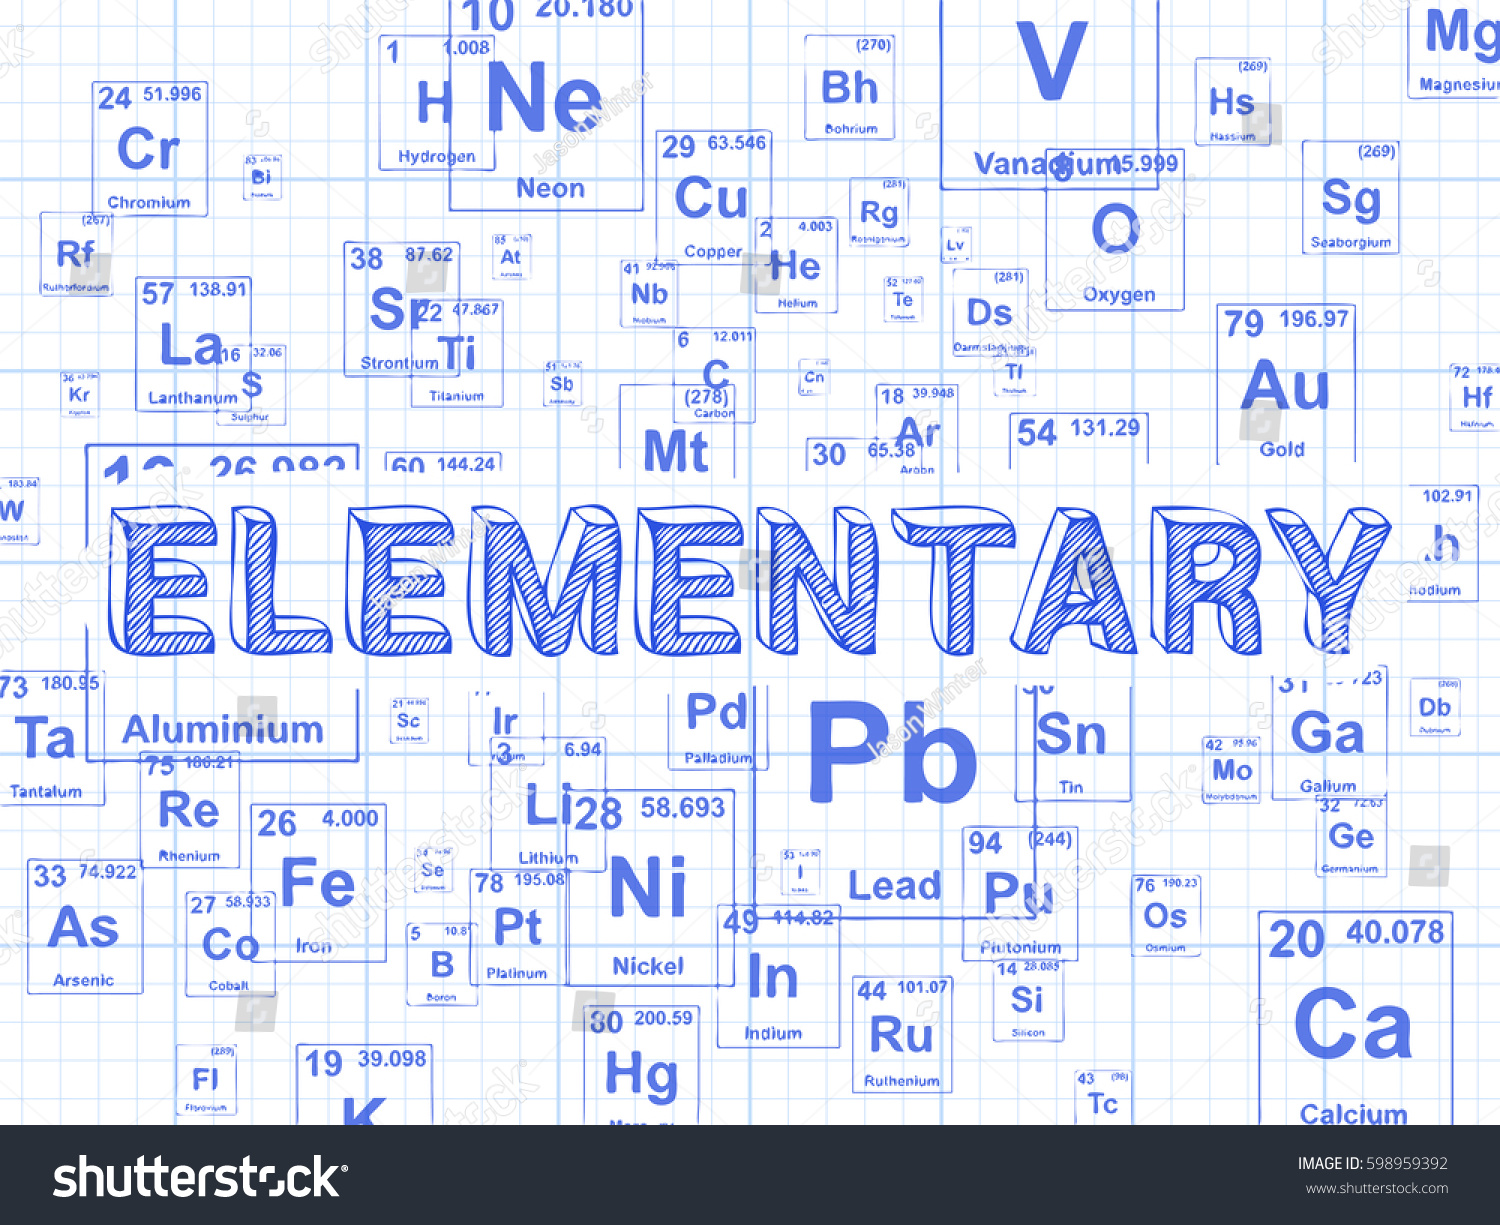 Words from periodic table symbols image collections periodic words from periodic table symbols images periodic table images words from periodic table symbols image collections gamestrikefo Choice Image